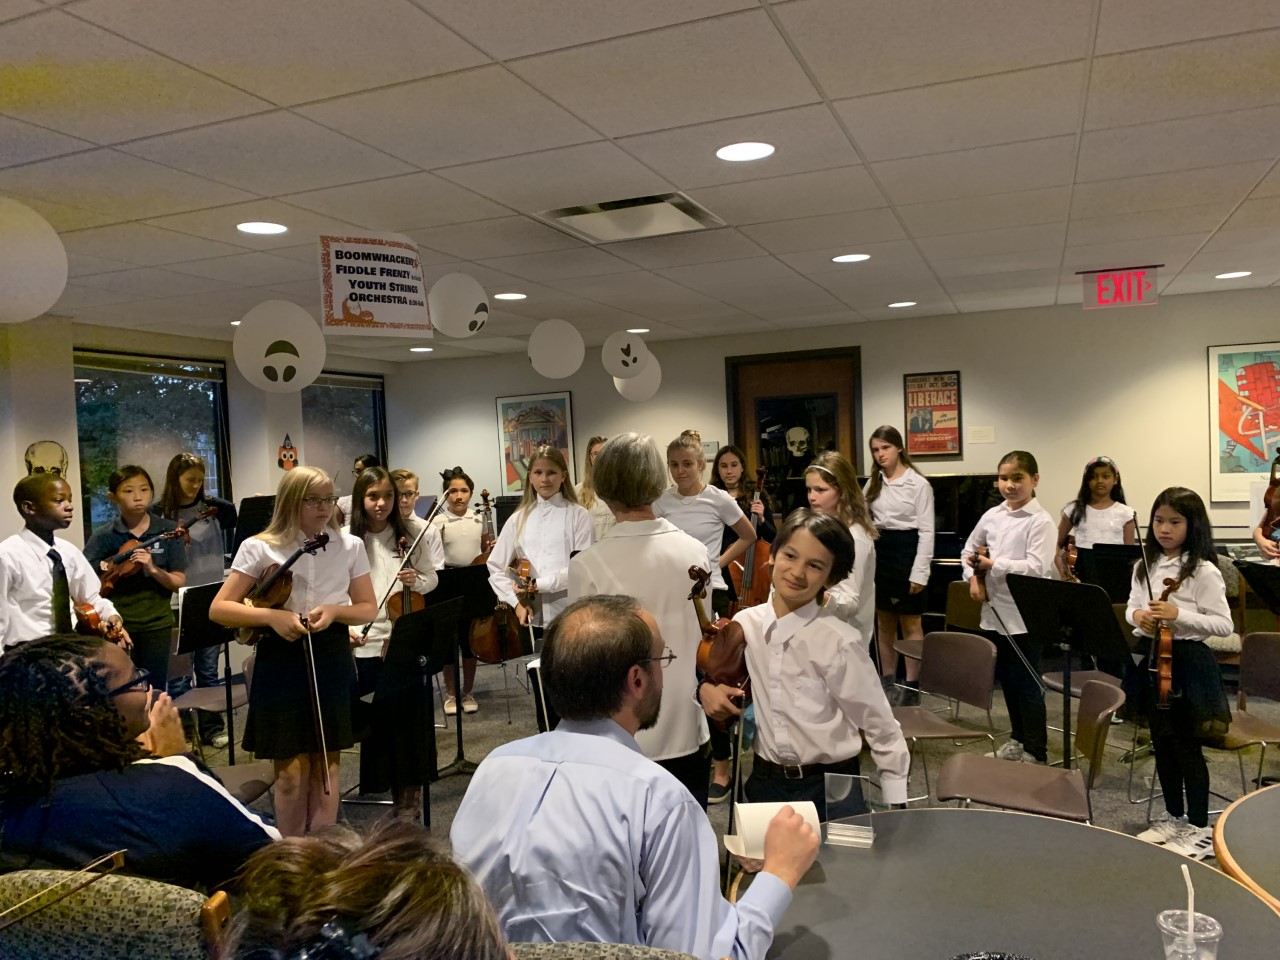 The Youth Strings Orchestra performs in the Music Library during the Halloween Open House on Tuesday, Oct. 29, 2019.